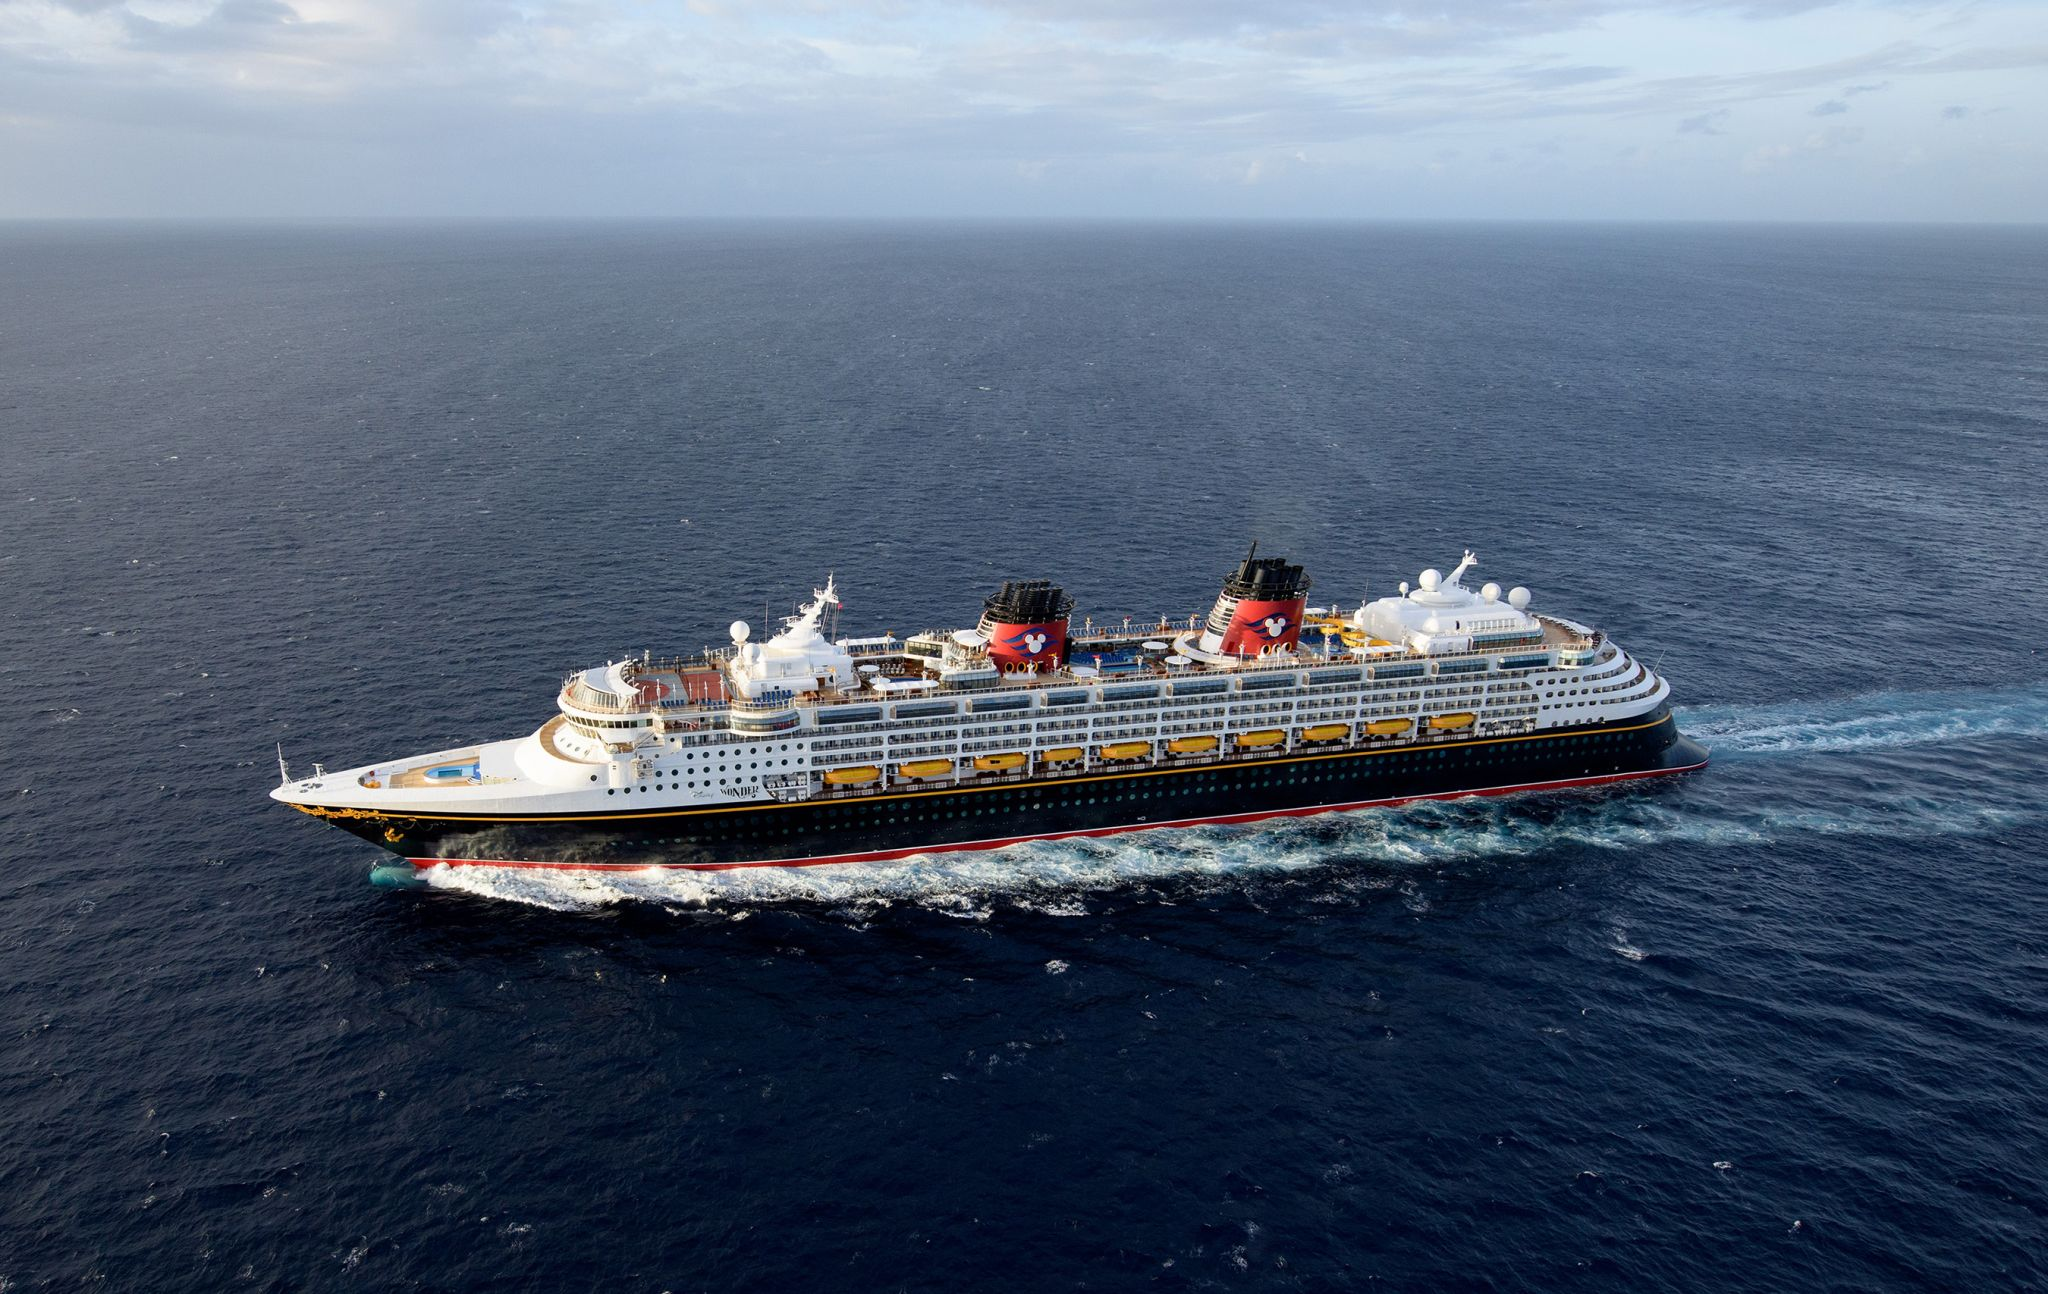 Bookings open for new Disney cruises sailing out of Galveston in 2021